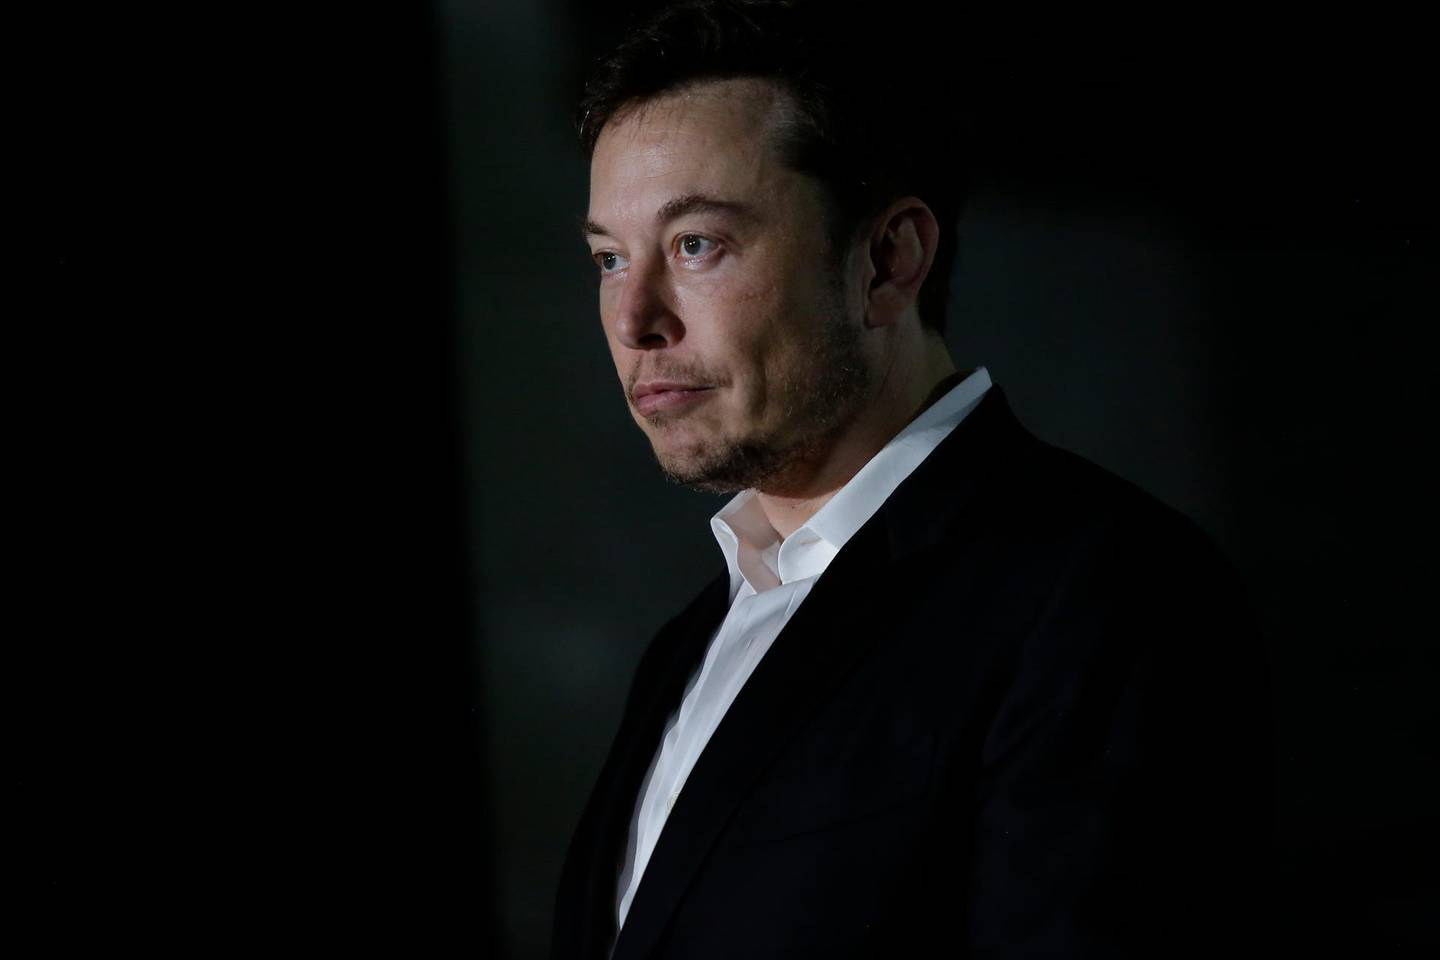 CHICAGO, IL - JUNE 14: Engineer and tech entrepreneur Elon Musk of The Boring Company listens as Chicago Mayor Rahm Emanuel talks about constructing a high speed transit tunnel at Block 37 during a news conference on June 14, 2018 in Chicago, Illinois. Musk said he could create a 16-passenger vehicle to operate on a high-speed rail system that could get travelers to and from downtown Chicago and O'hare International Airport under twenty minutes, at speeds of over 100 miles per hour. (Photo by Joshua Lott/Getty Images)